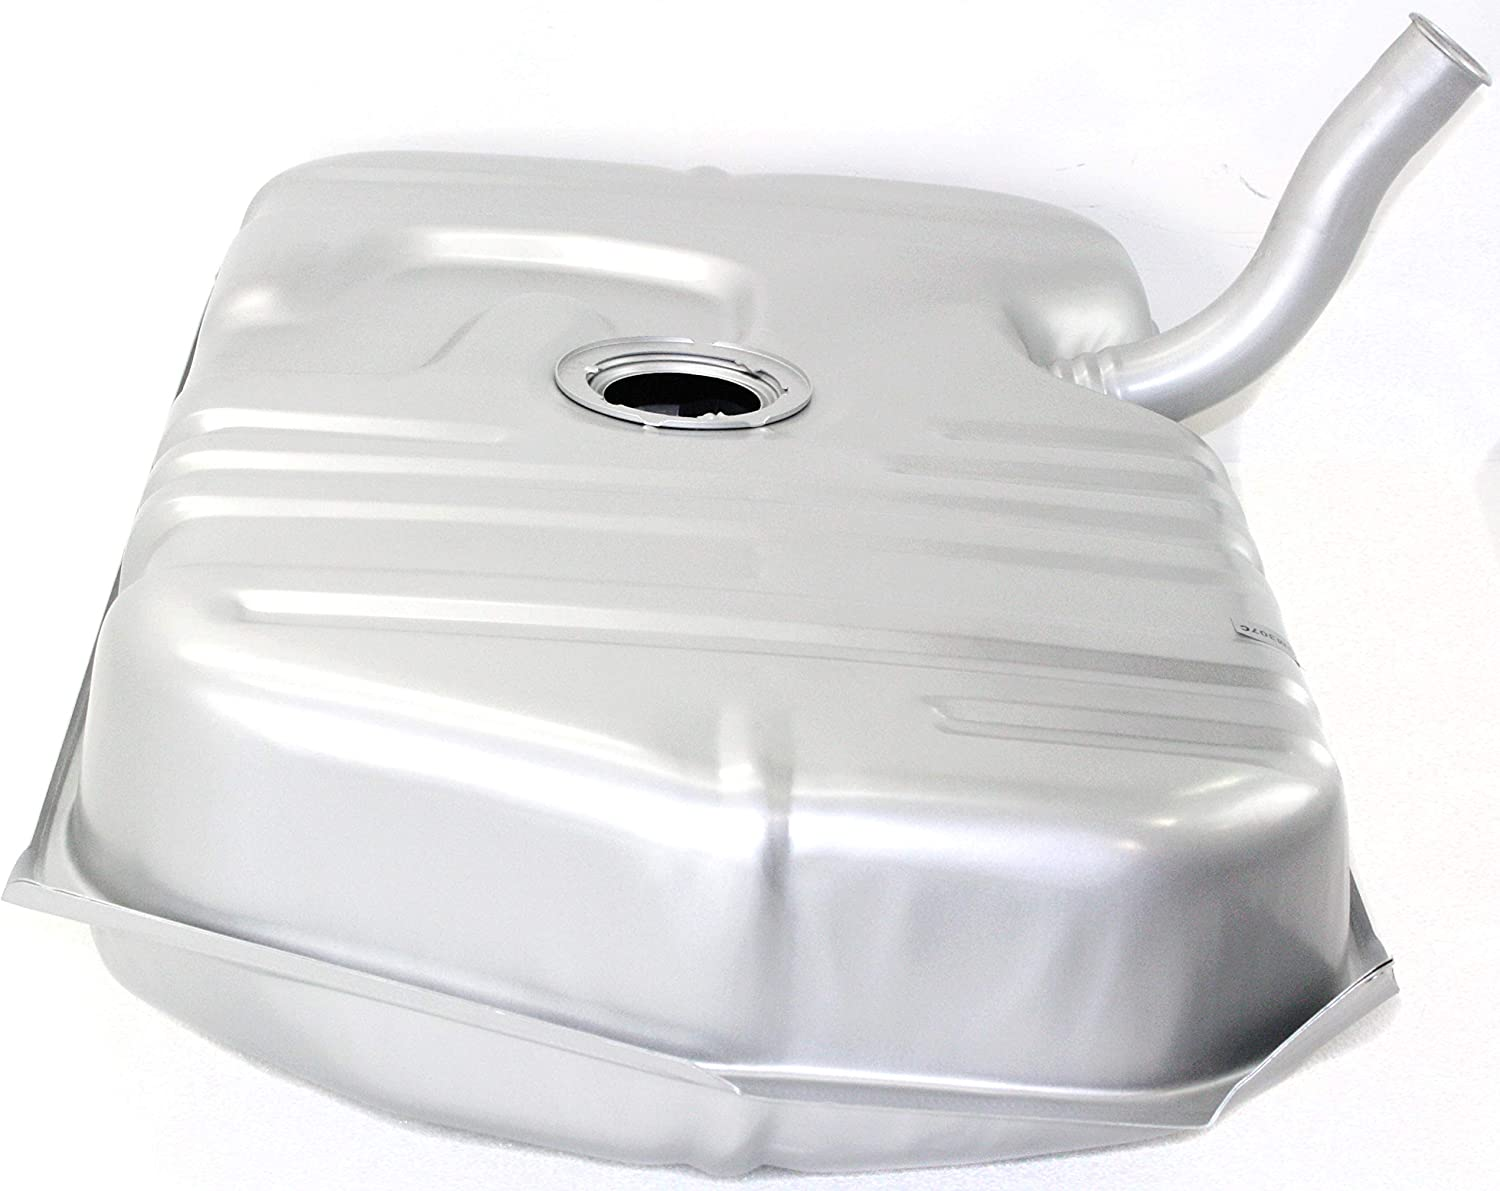 Fuel Tank Compatible with BUICK REGAL 1984-1987 Sedan /& Coupe With Filler Neck 17 Gal.